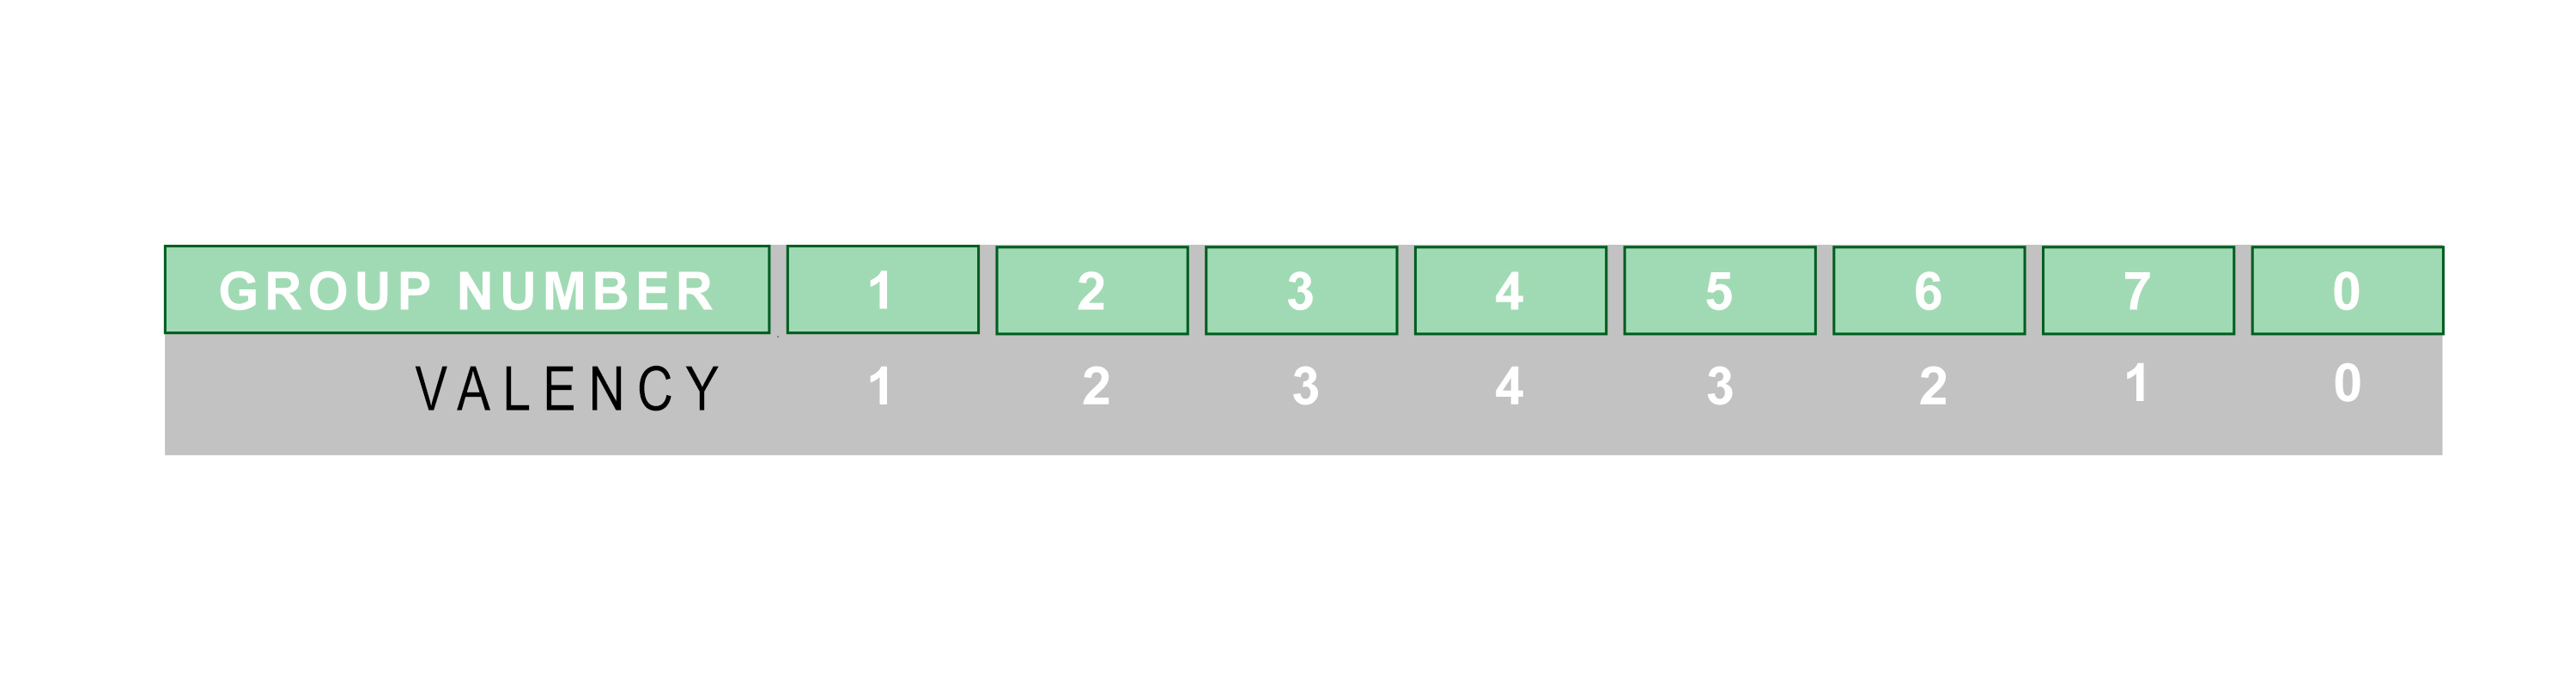 Valency is the number of bonds an atom can make with others table showing the valency based on the elemental group number of the periodic table urtaz Image collections